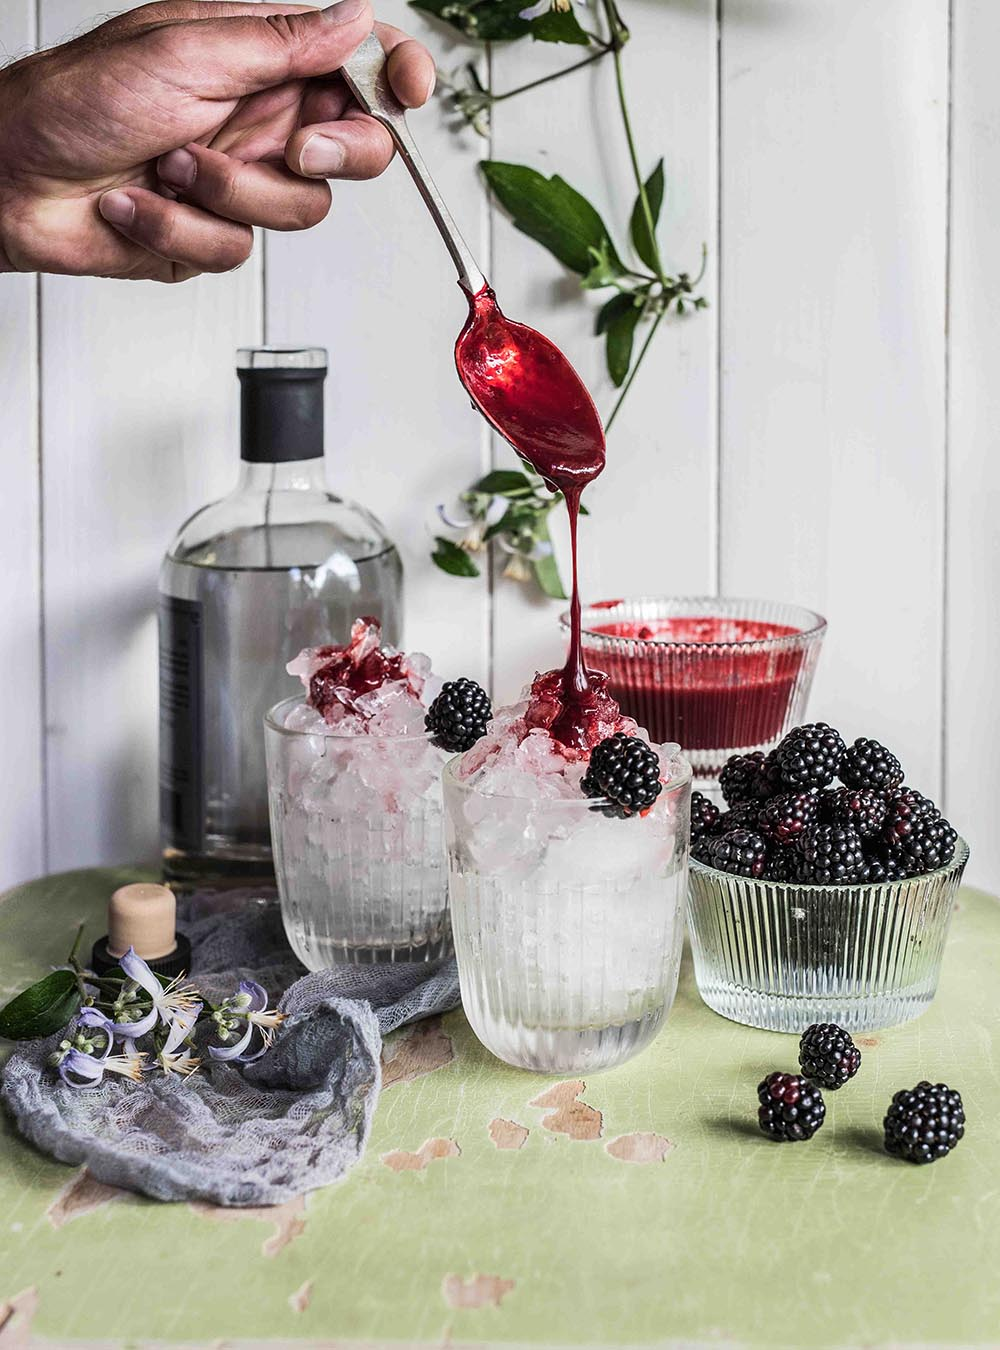 Bramble - Mein Sommer Gin Cocktail